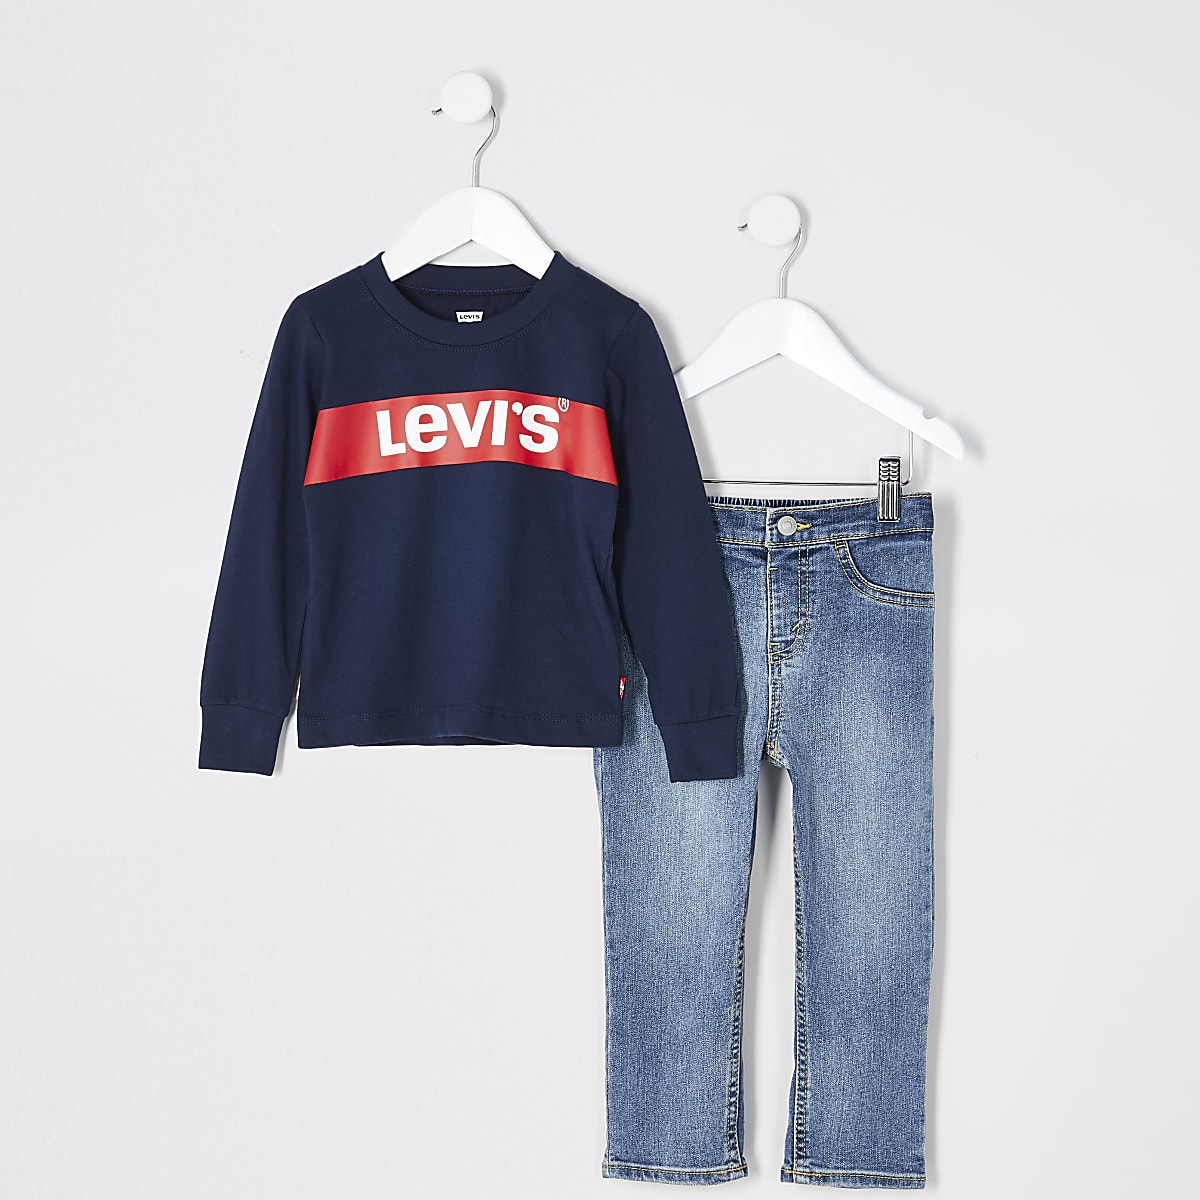 Mini boys Levi's navy T-shirt outfit